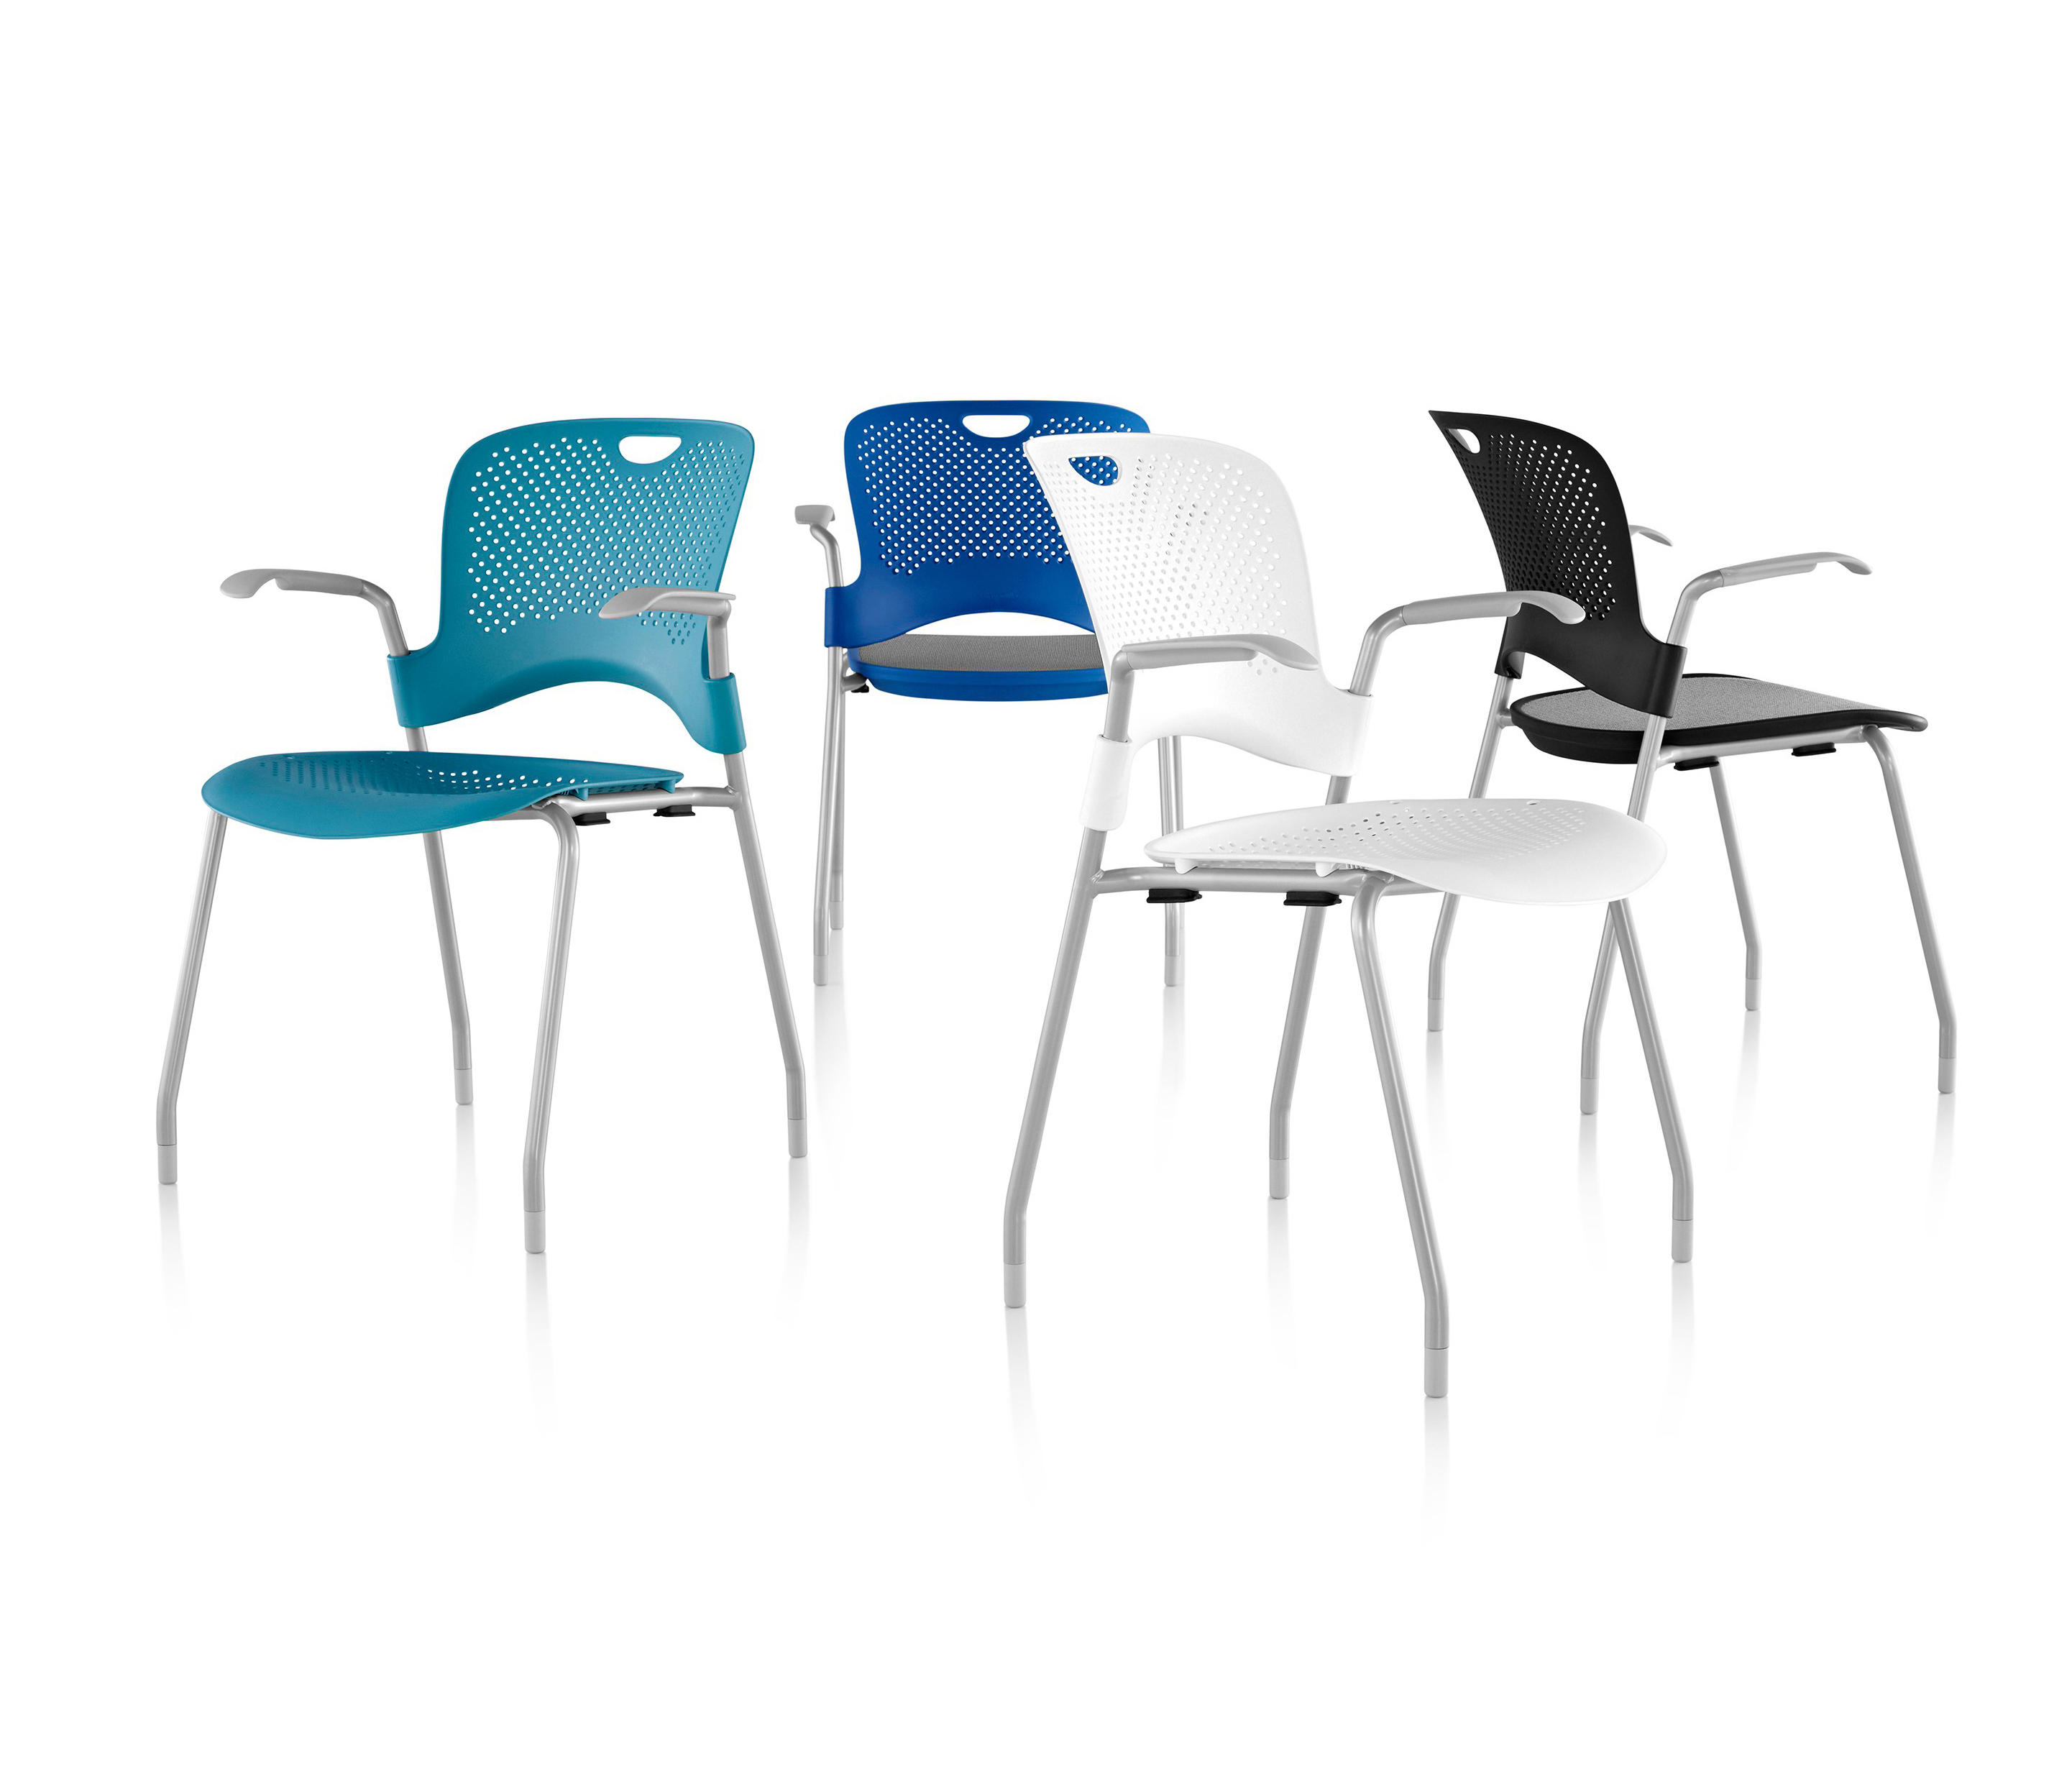 Caper Stacking Chair by Herman Miller   Multipurpose chairs  CAPER STACKING CHAIR   Multipurpose chairs from Herman Miller  . Herman Miller Caper Multipurpose Chair. Home Design Ideas